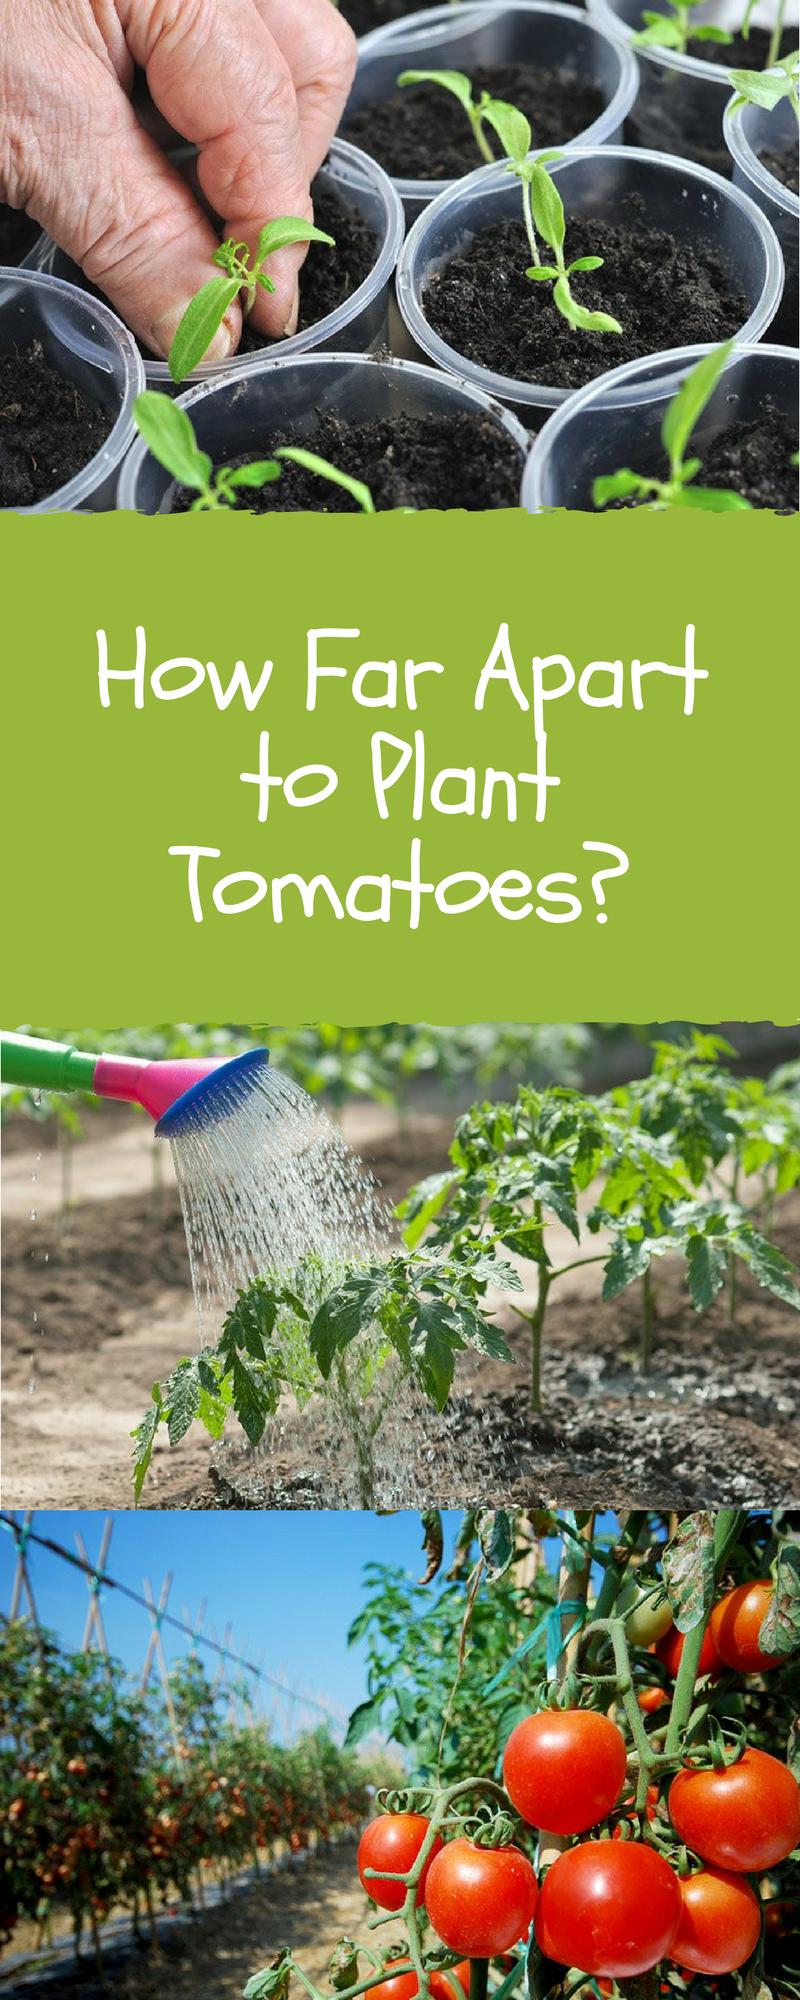 How Far Apart to Plant Tomatoes: Skills You Need (2020 Update) | Gardening for beginners, Tomato ...